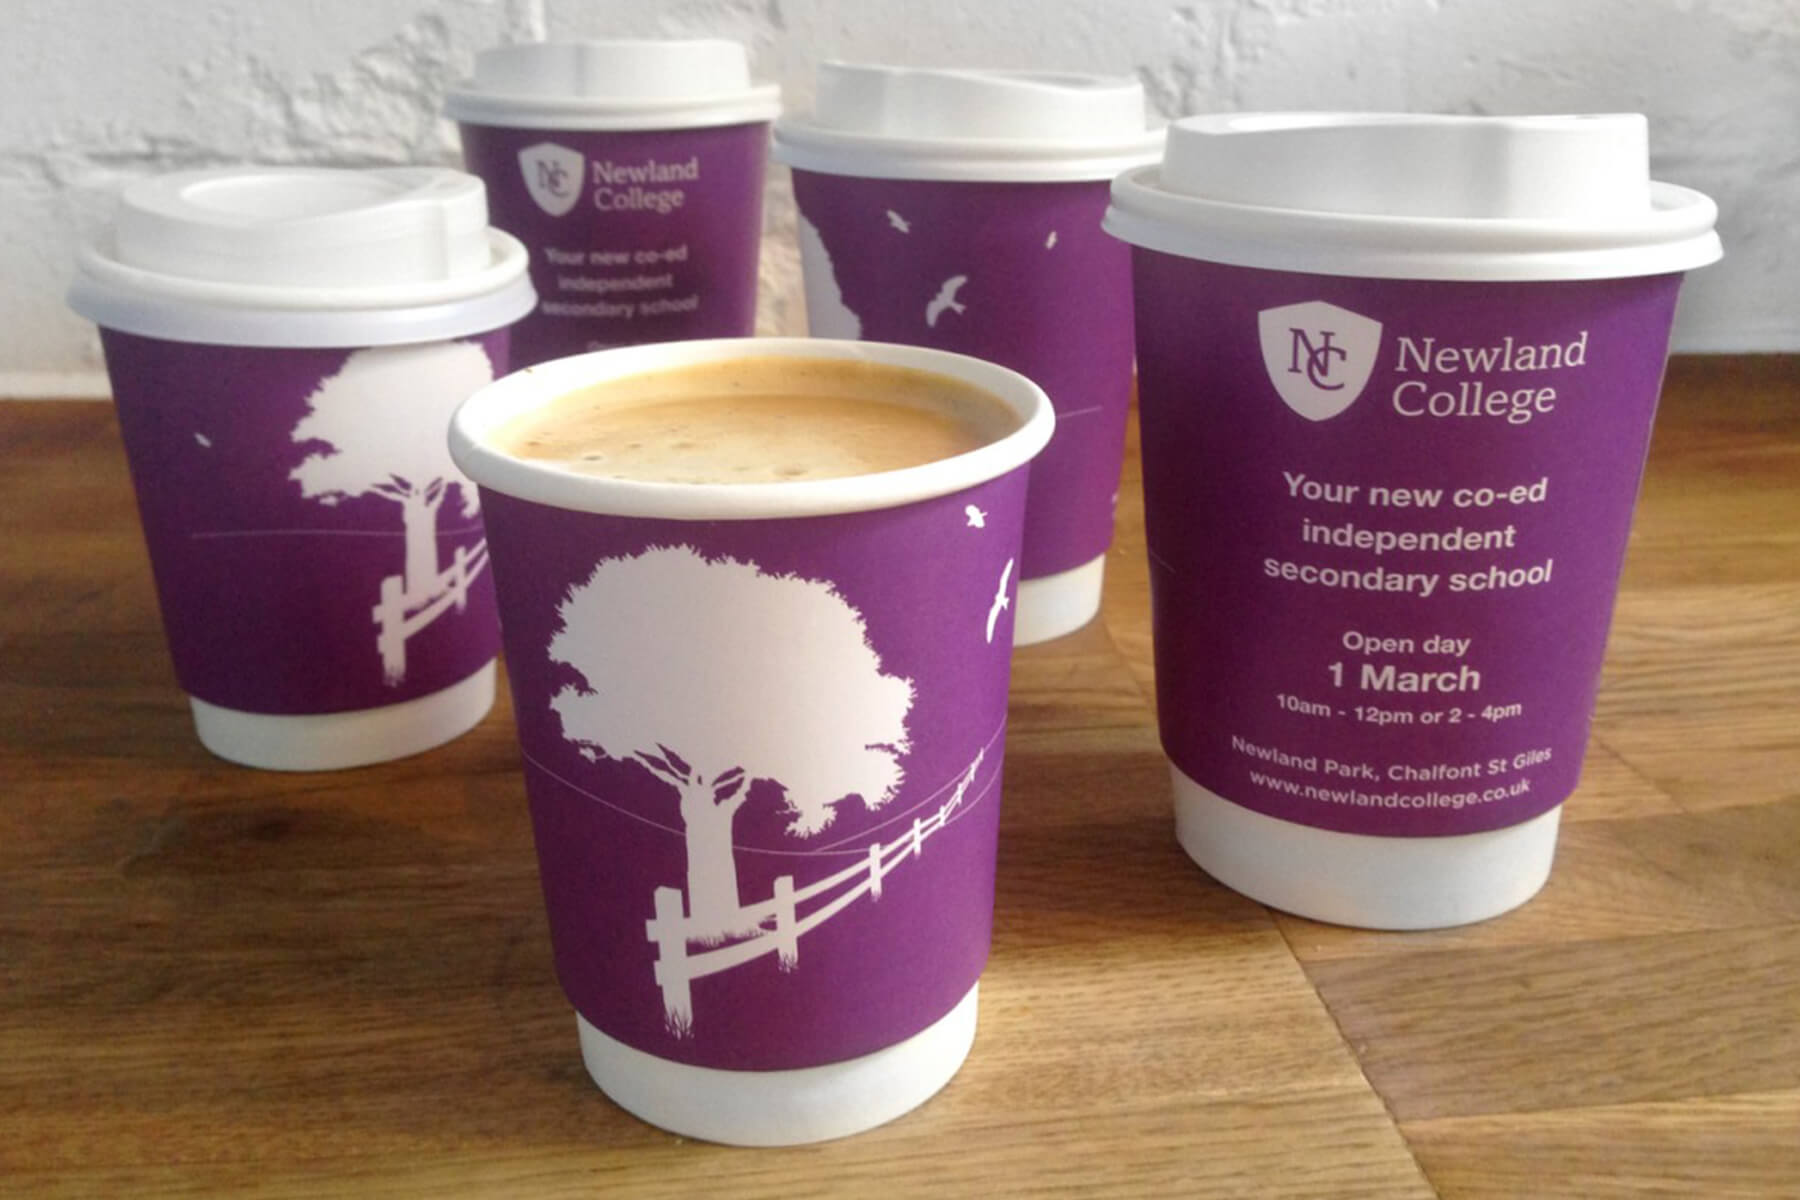 Education branding - new college brand launch